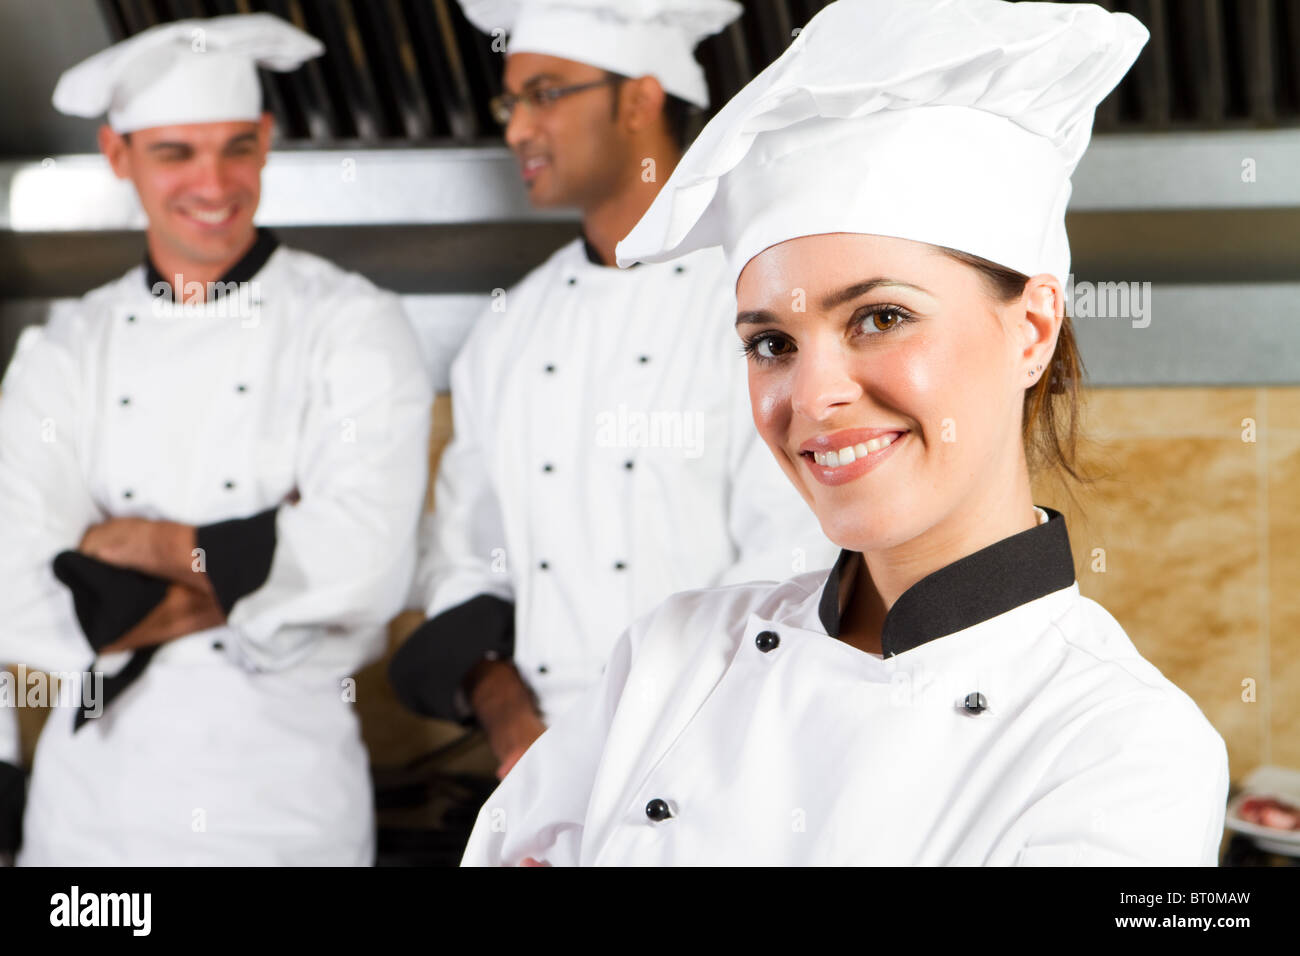 group of young beautiful professional chefs portrait in industrial kitchen Stock Photo